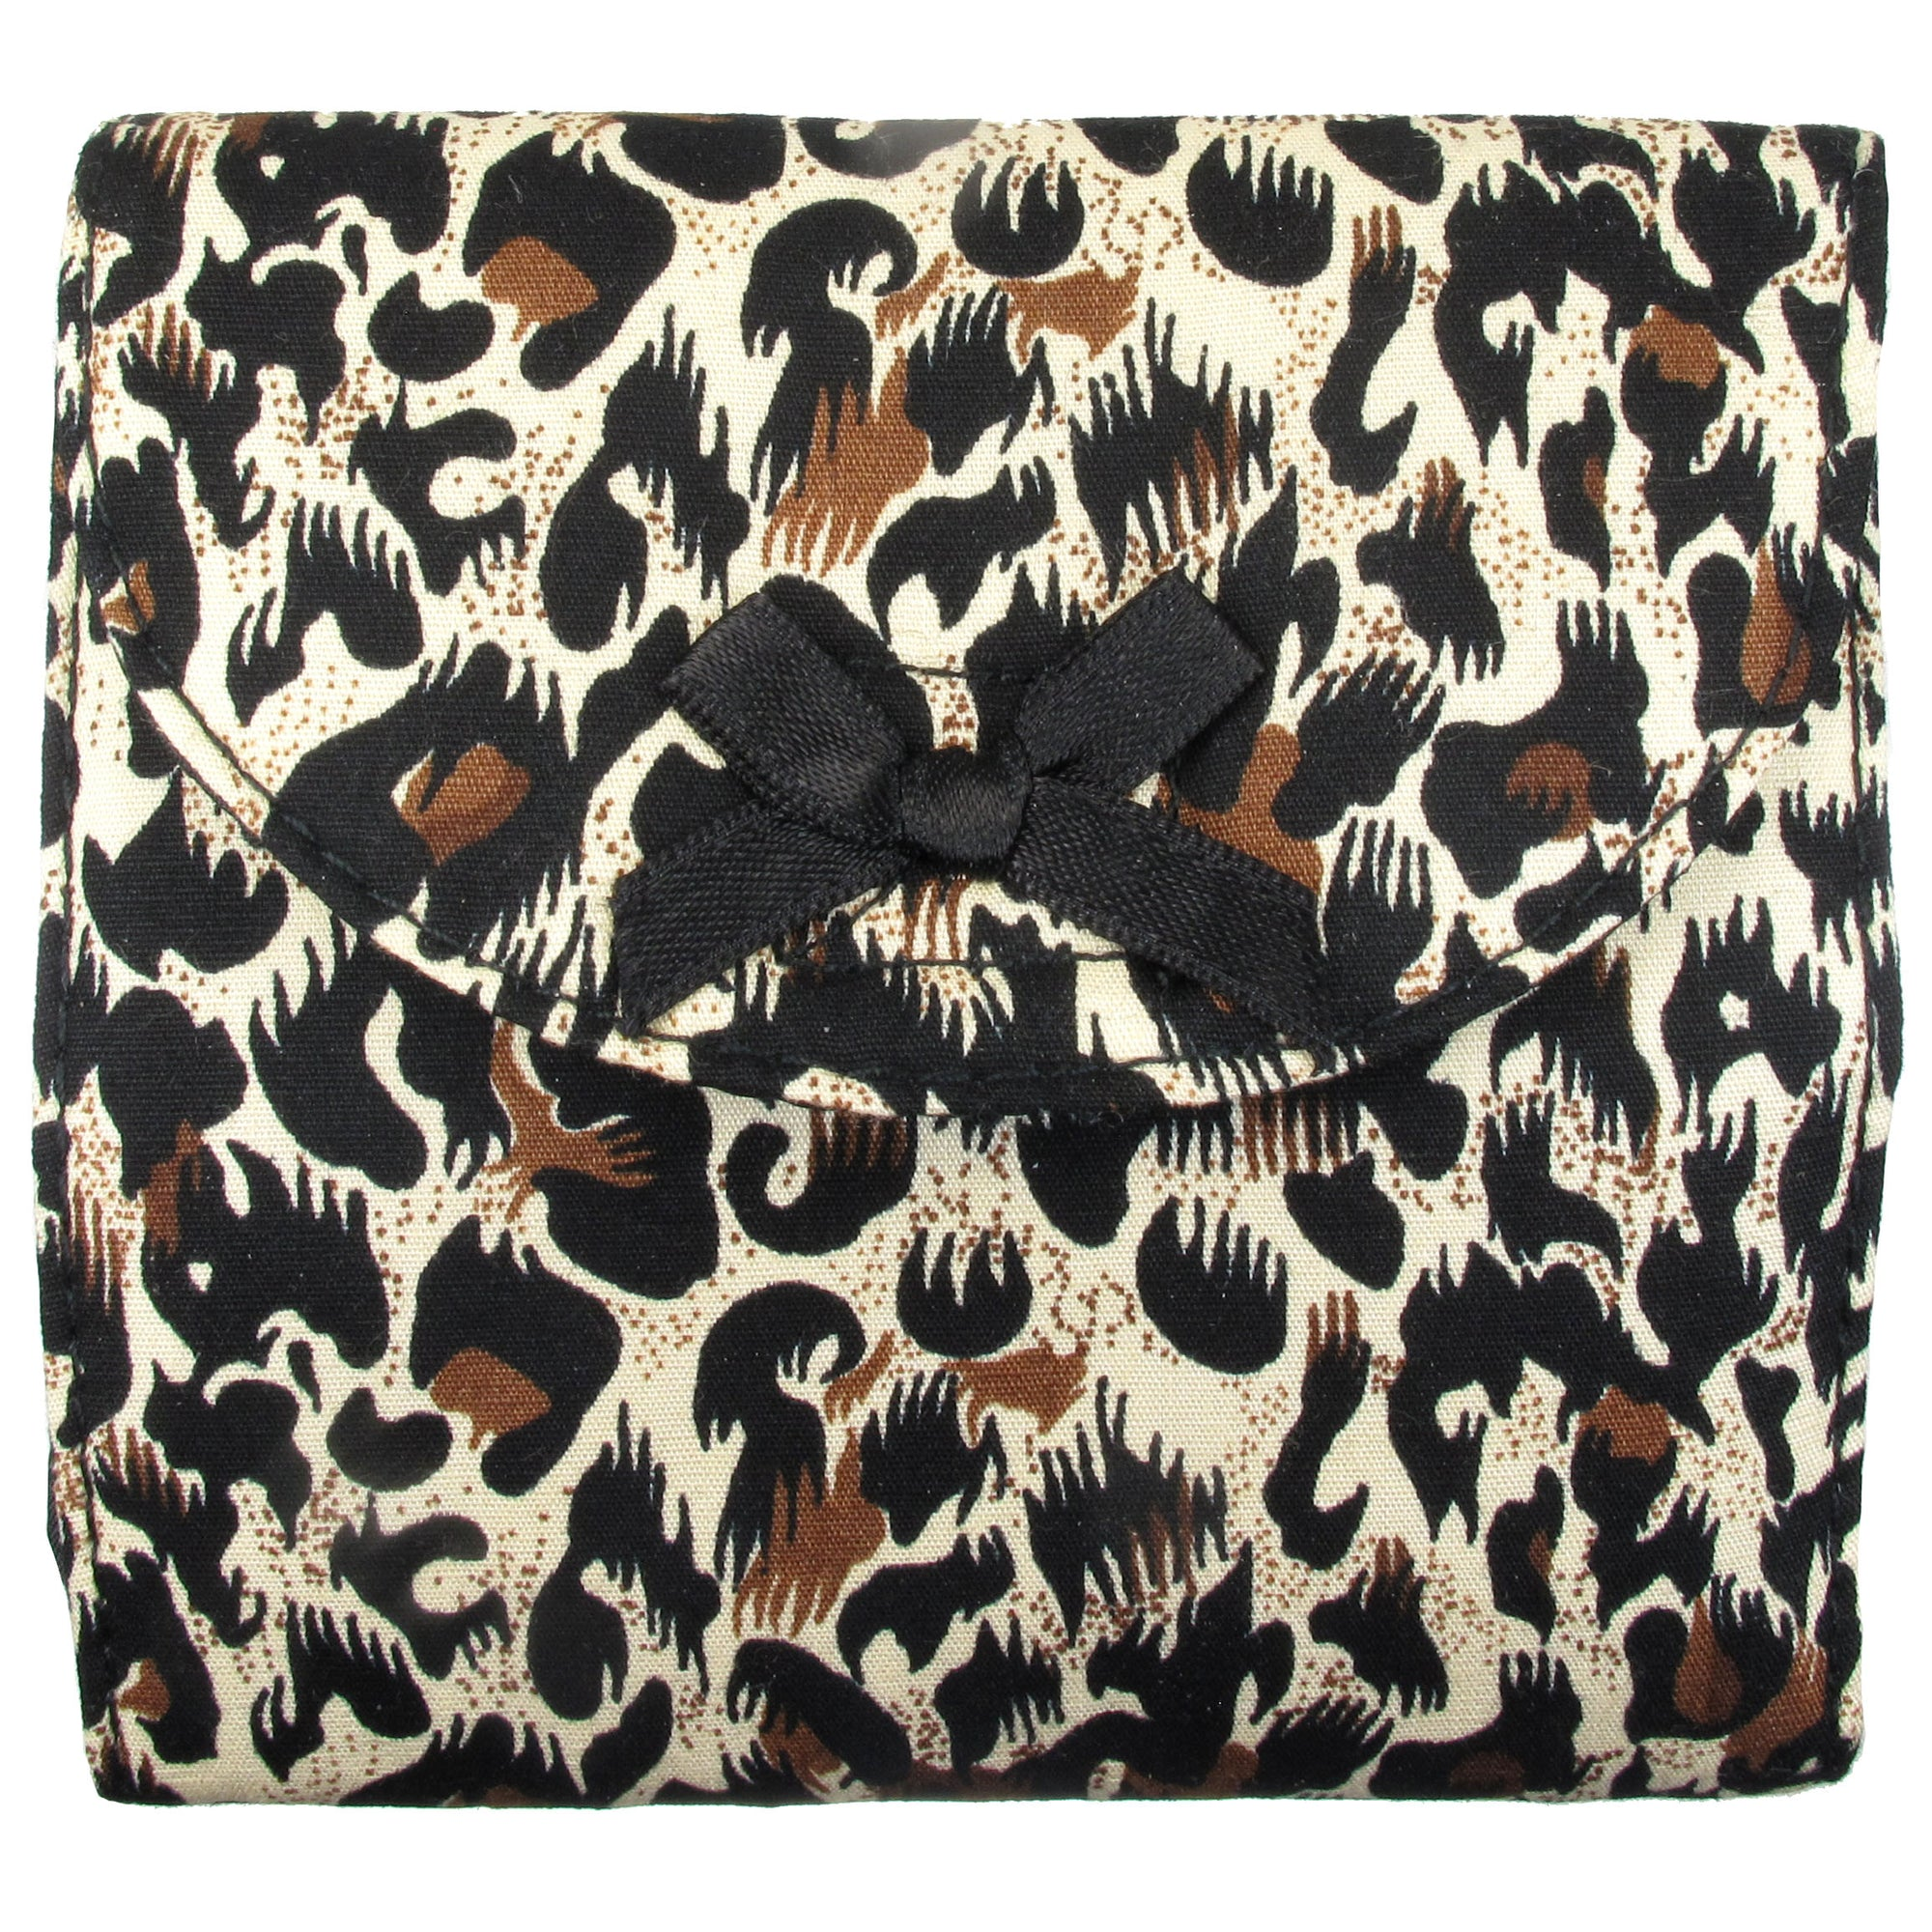 Sanitary Napkin (Sanitary Pad) Case (Bag, Pouch, Holder), Cotton Fabric, Small, Leopard Print